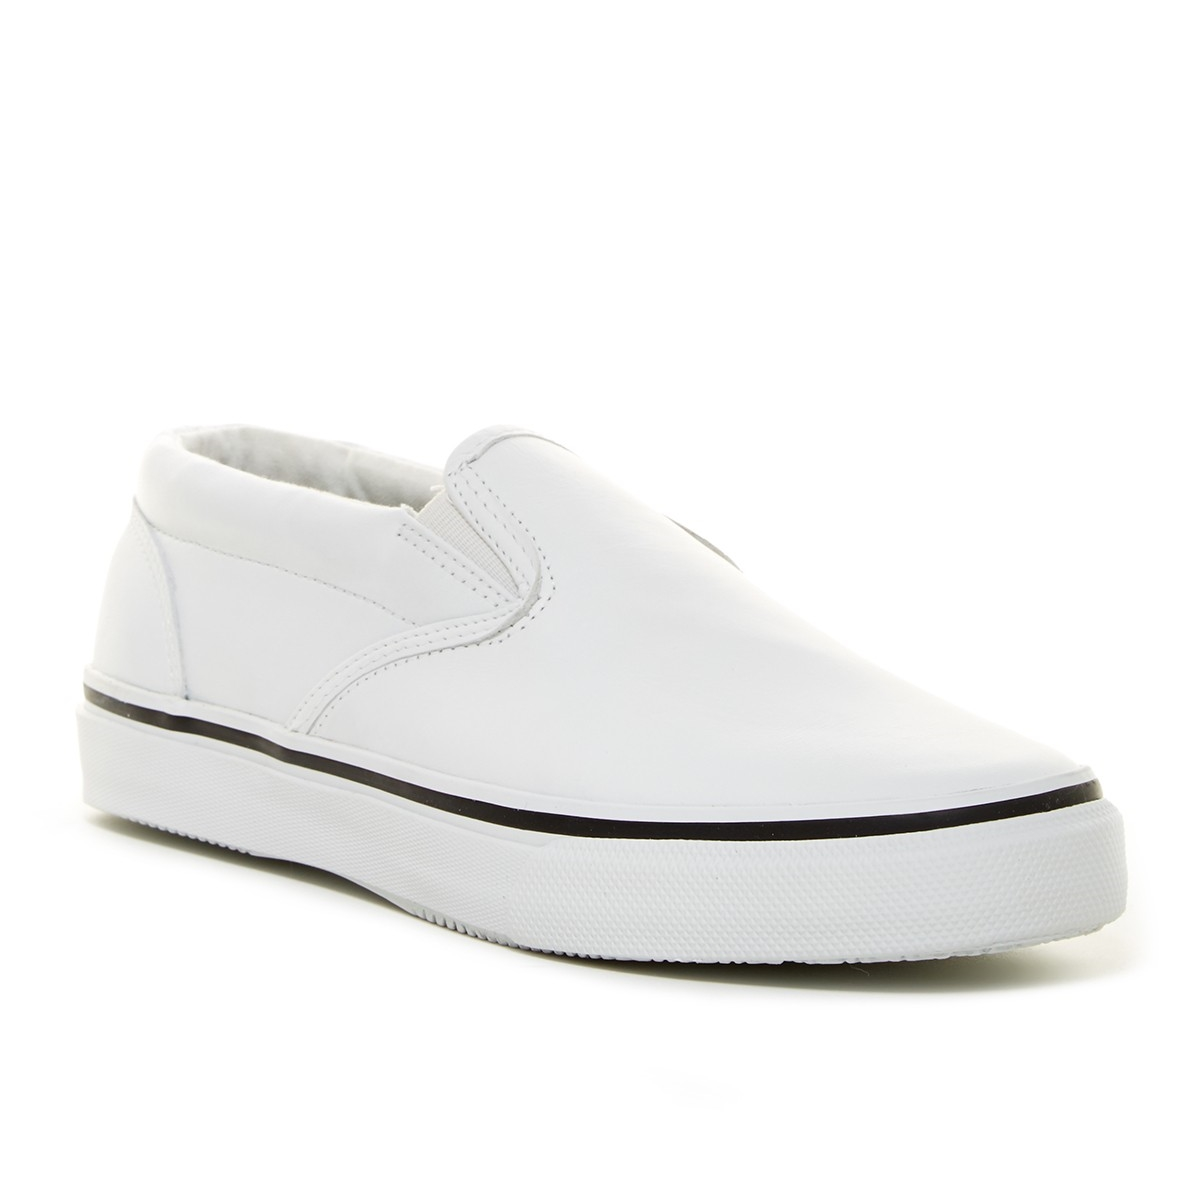 Sperry Slip-On